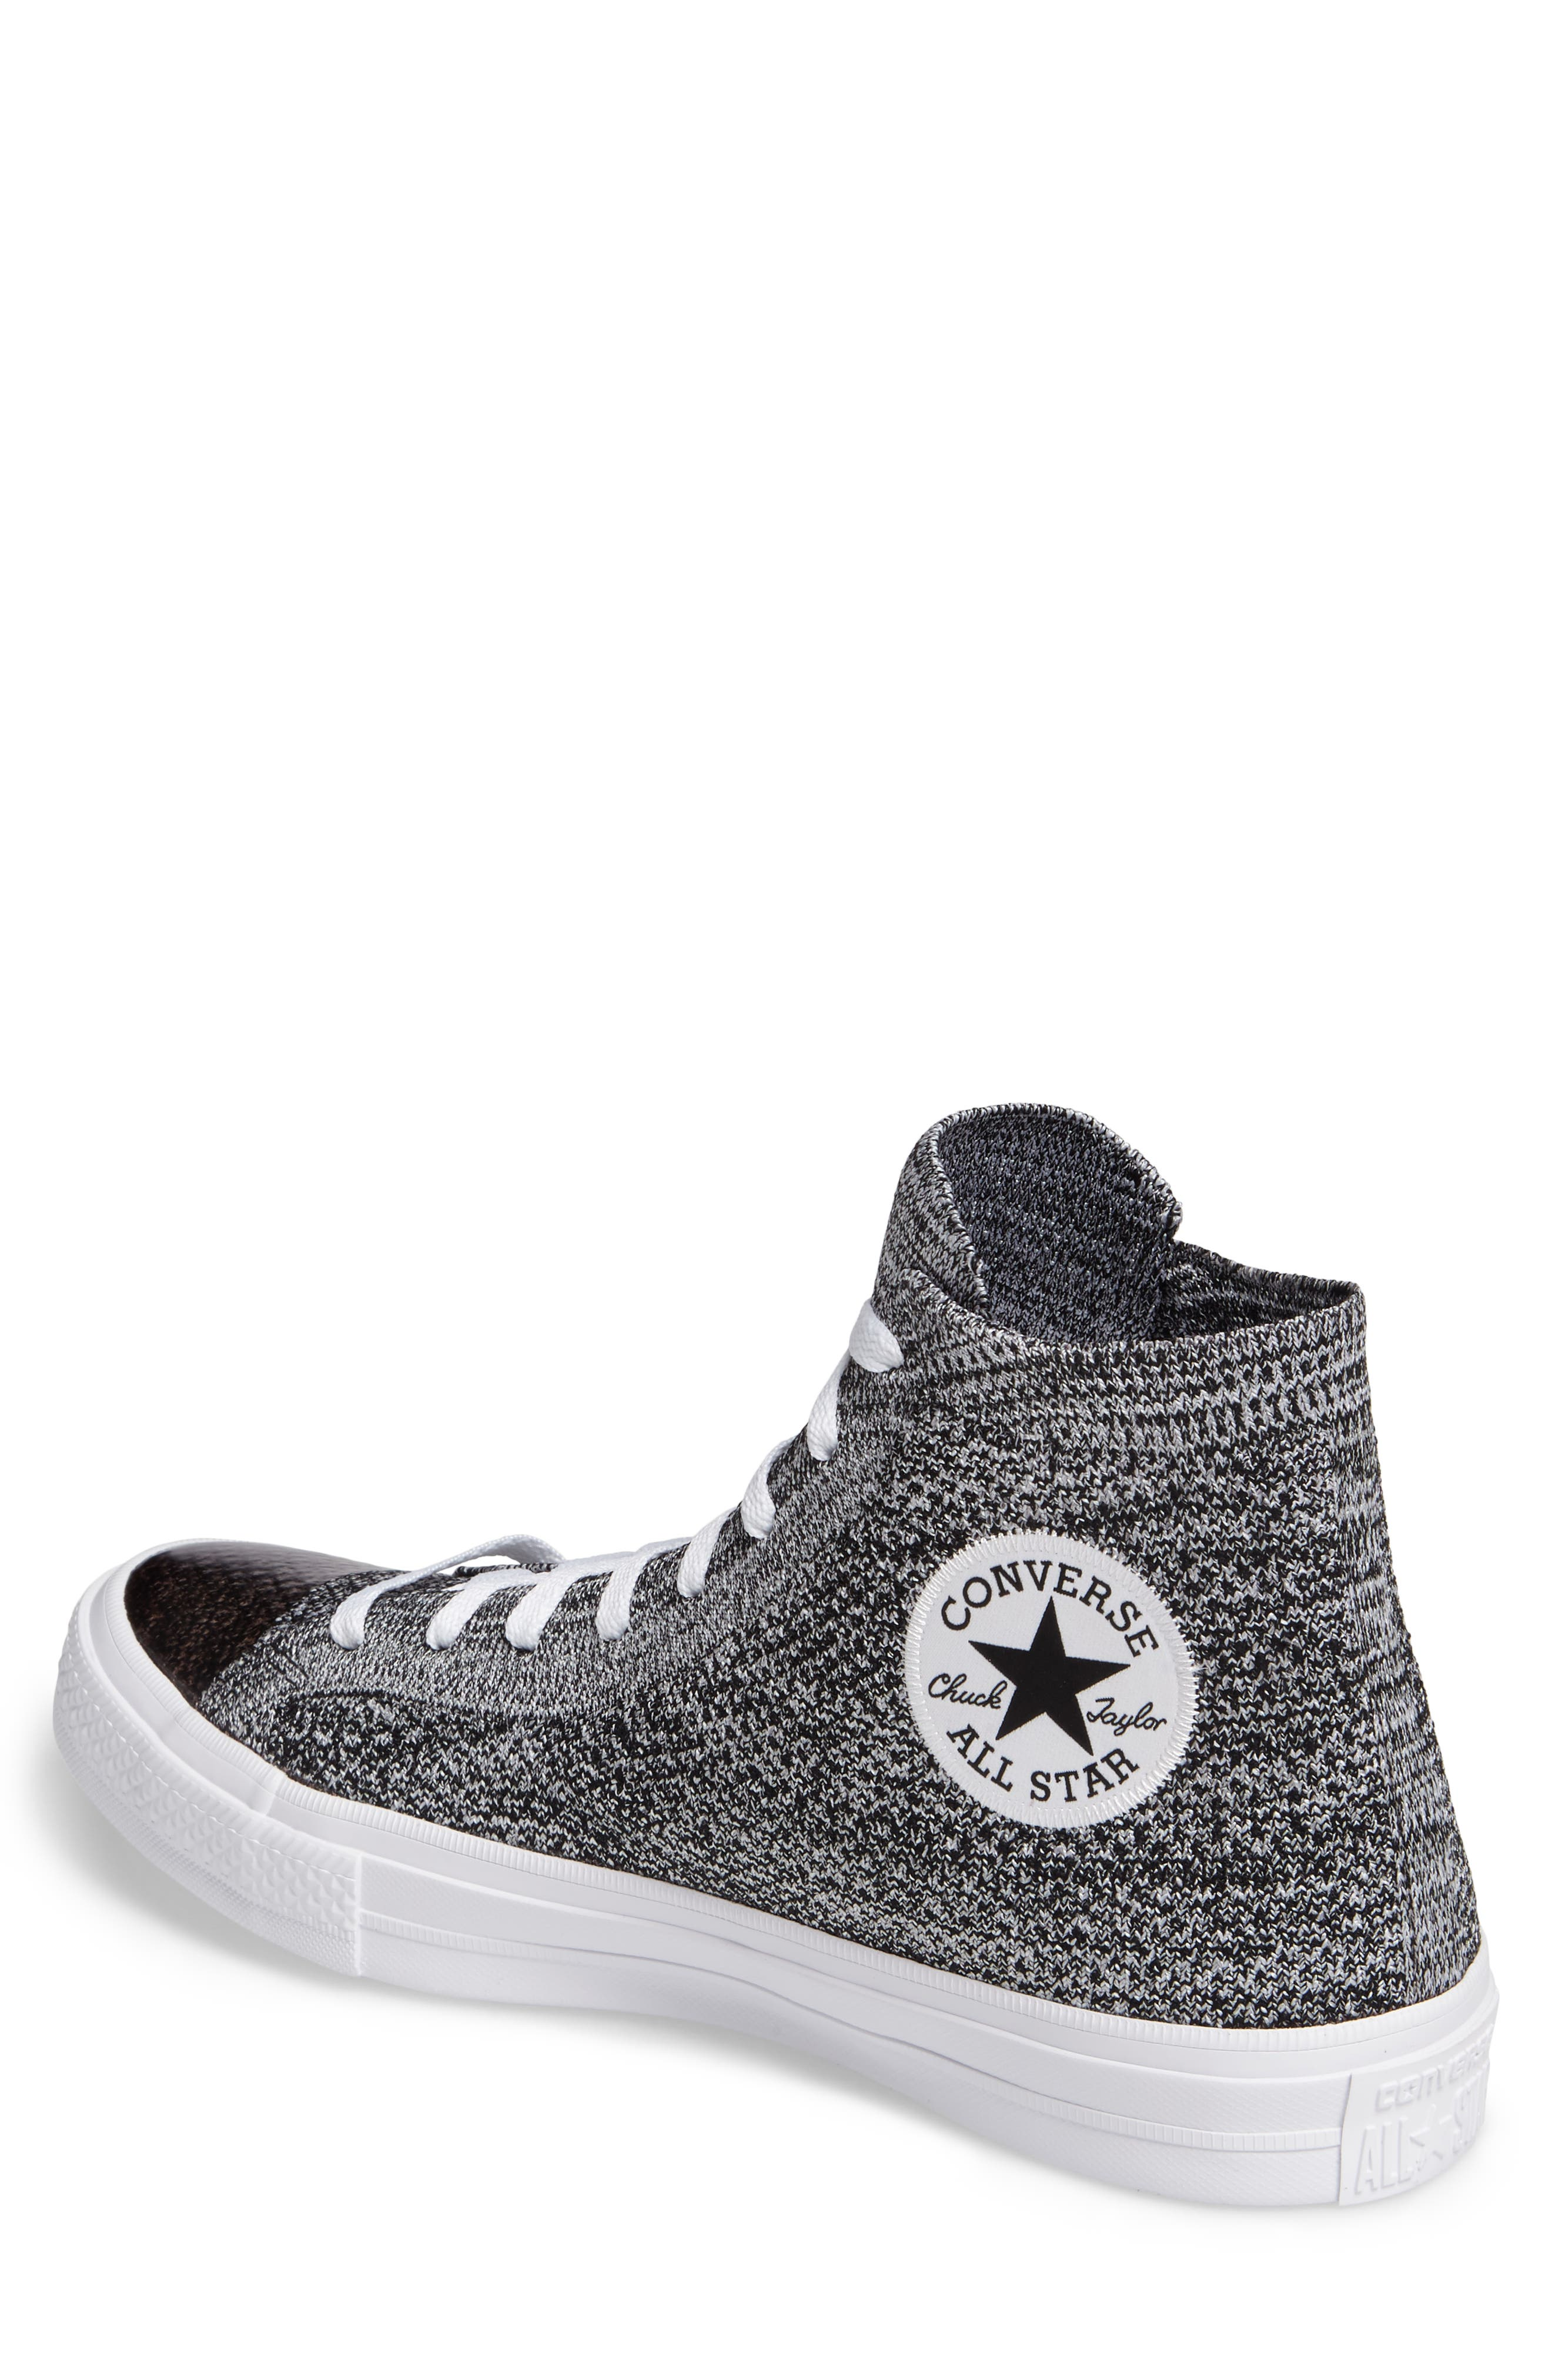 Chuck Taylor<sup>®</sup> All Star<sup>®</sup> Flyknit Hi Sneaker,                             Alternate thumbnail 8, color,